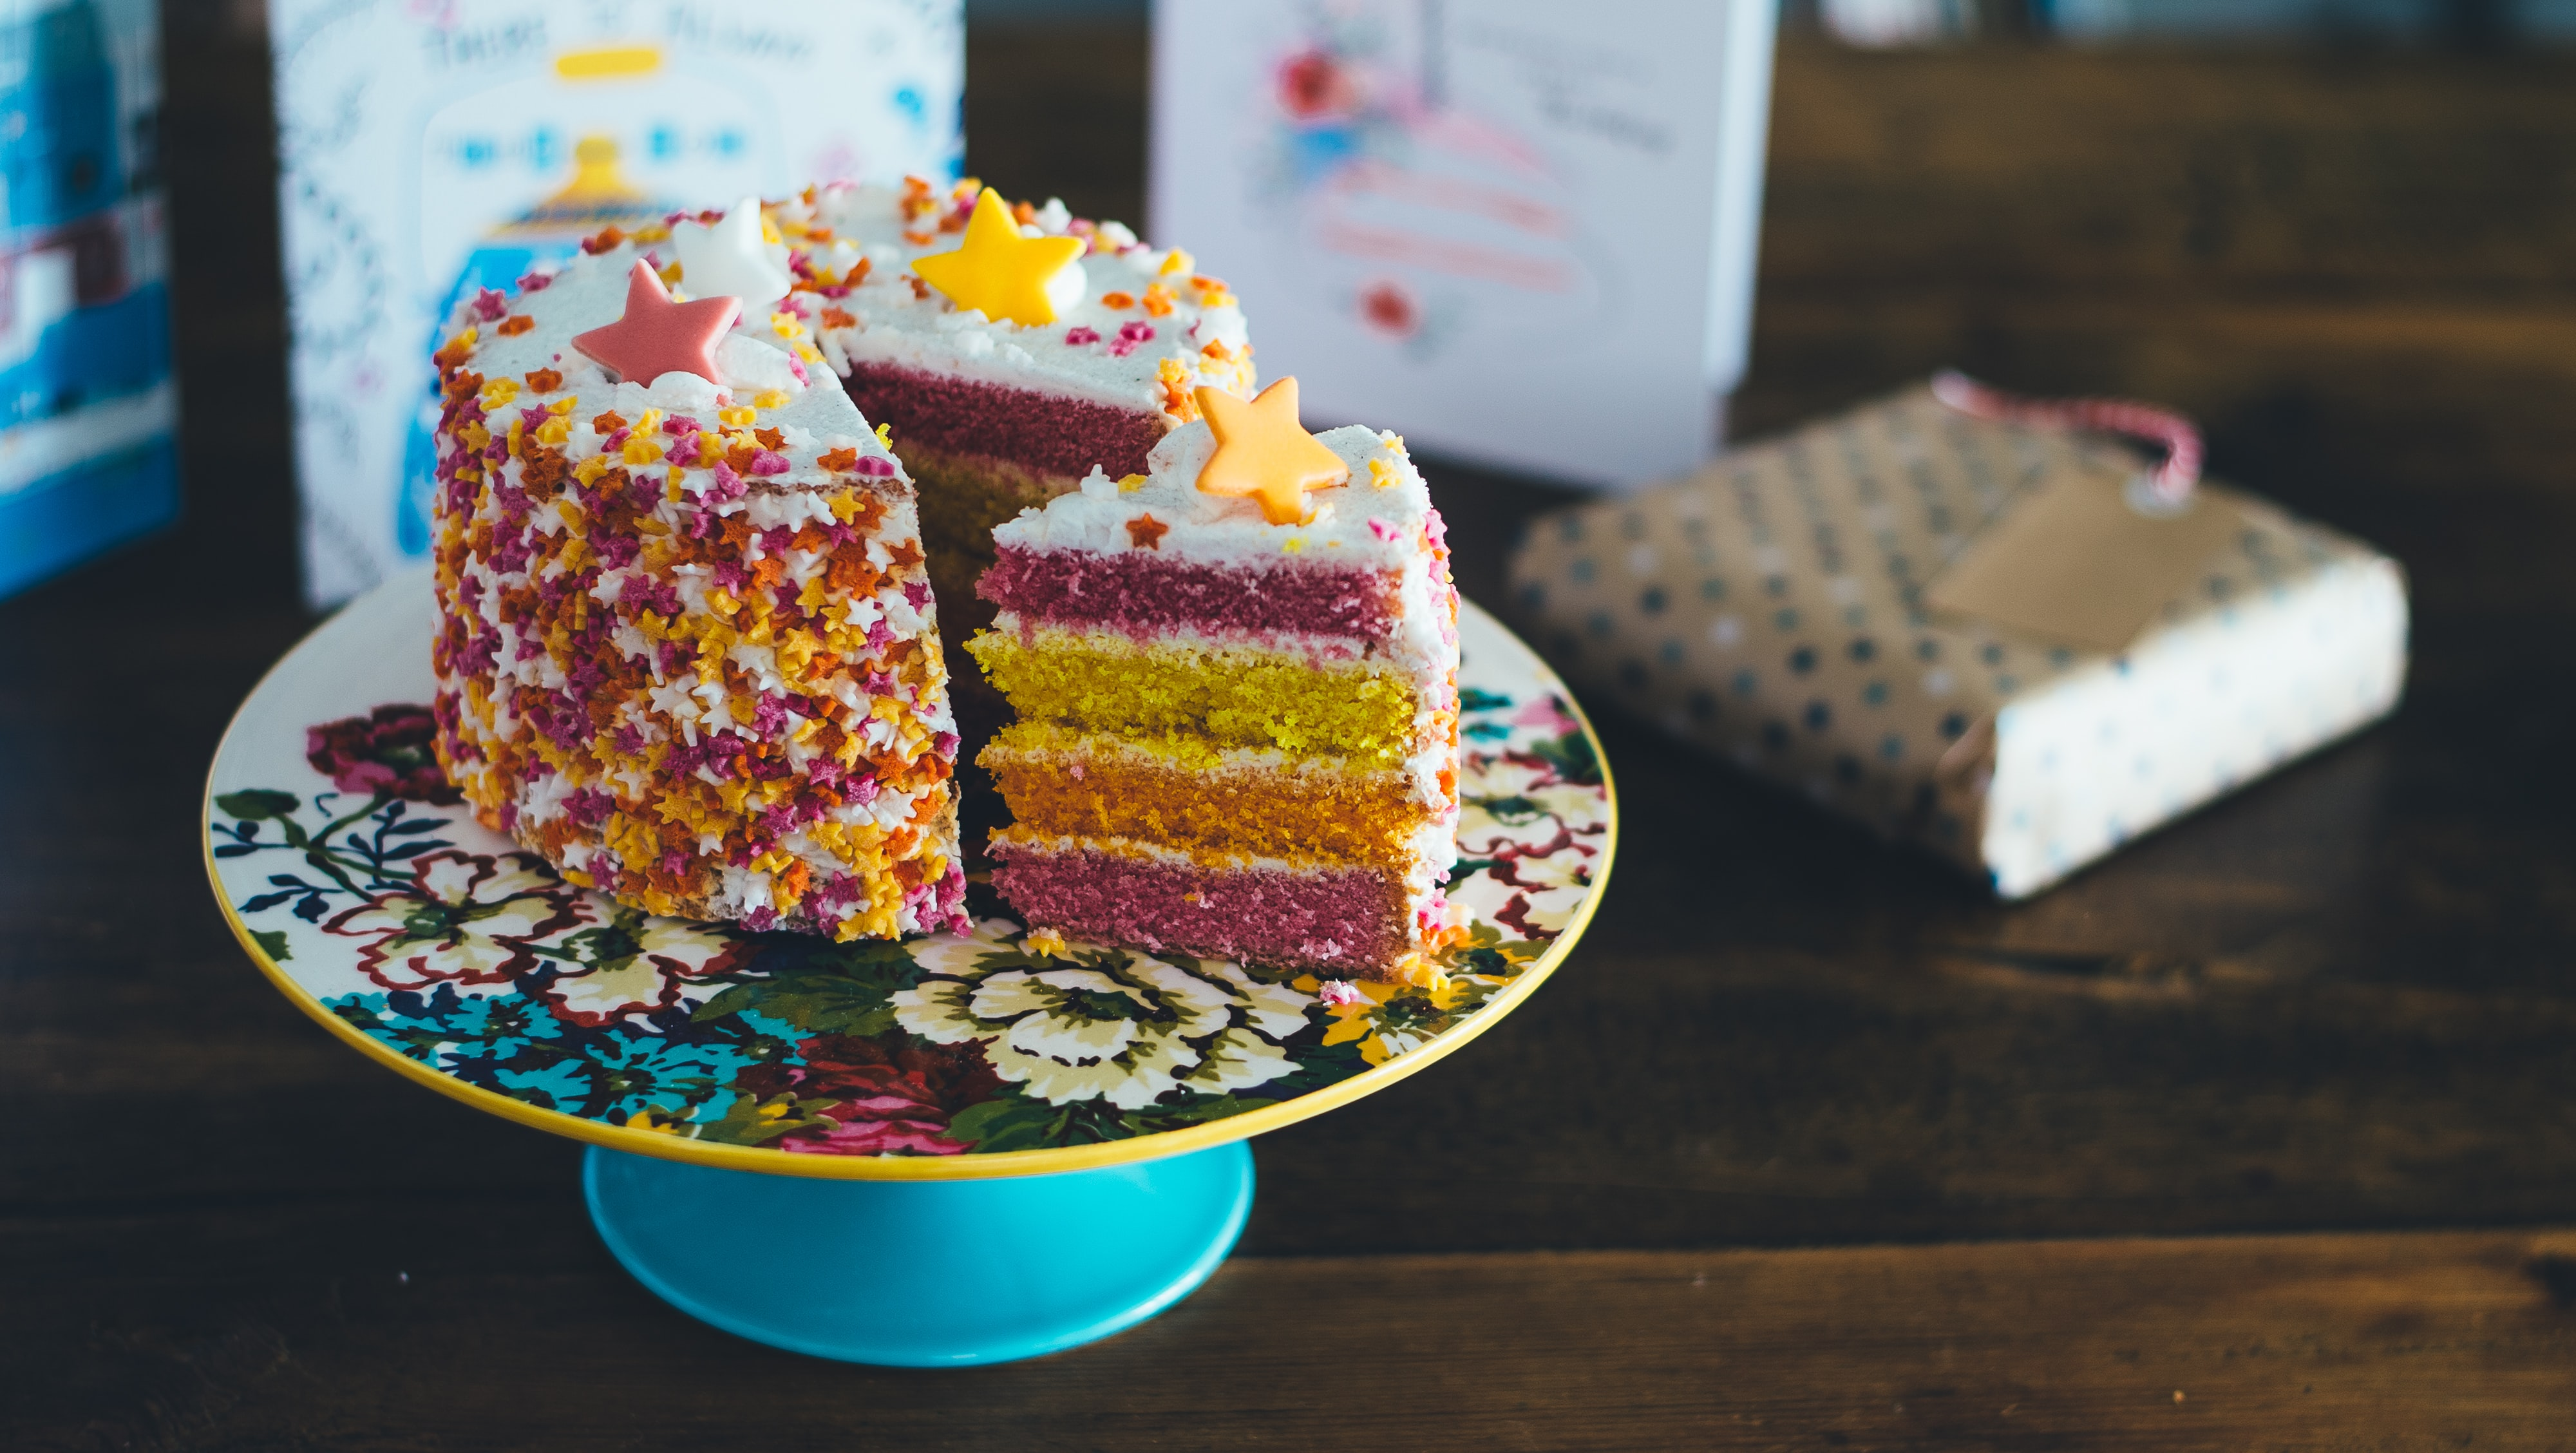 A birthday cake with rainbow sponge and stars on top, with a slice cut out and sat at an angle on the plate